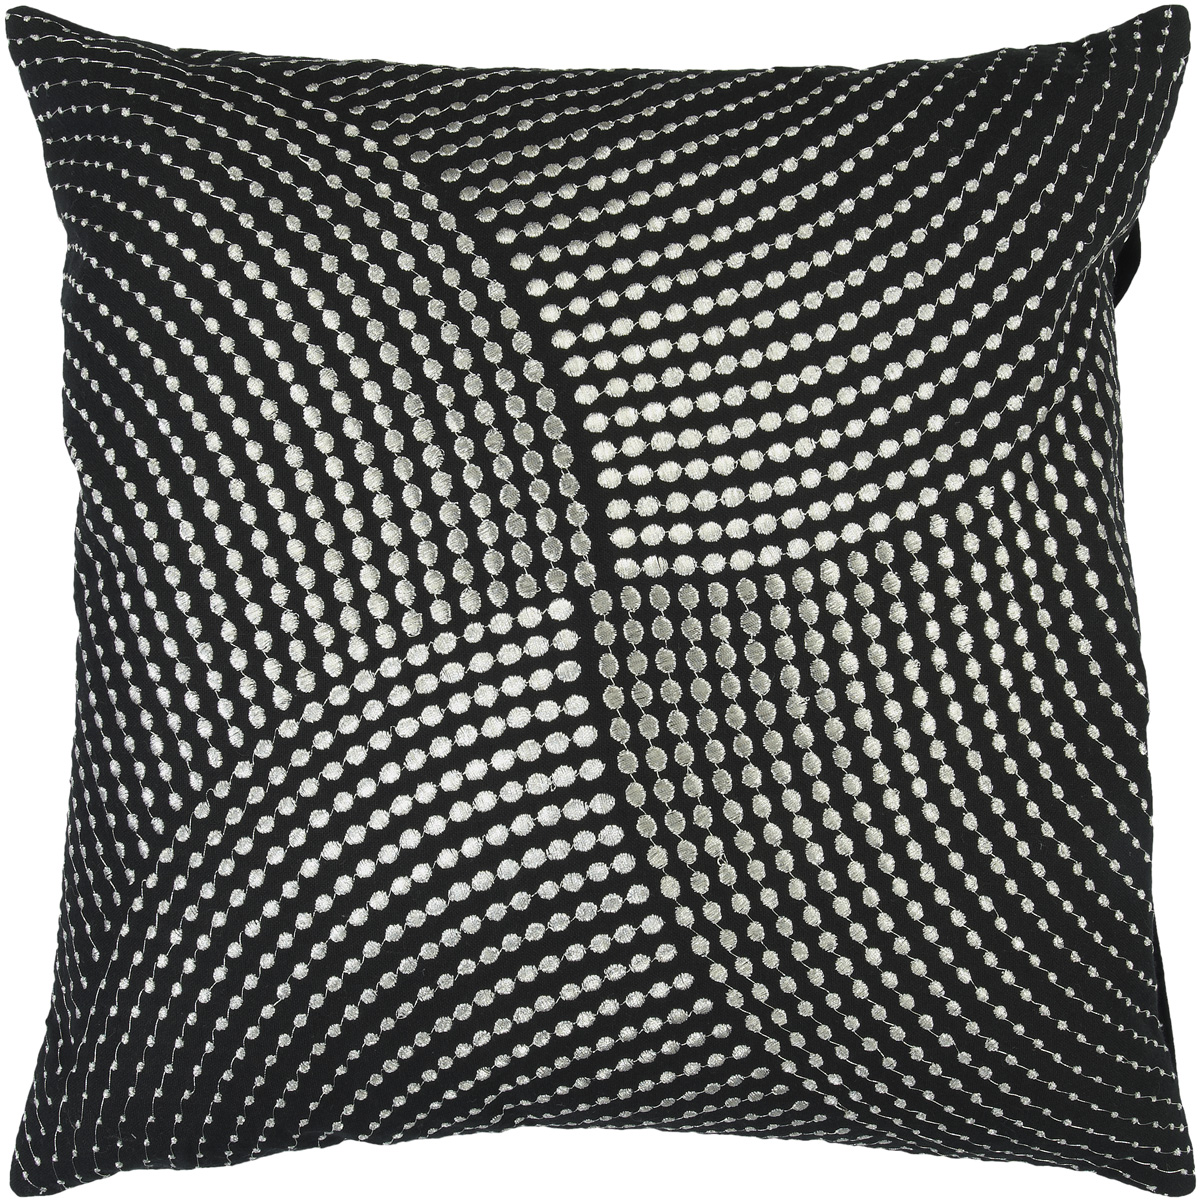 Surya Surya Pillows Area Rugs - P0223 Contemporary Black/Silver Stipple Polka Dot Embroidery Stripes Rug